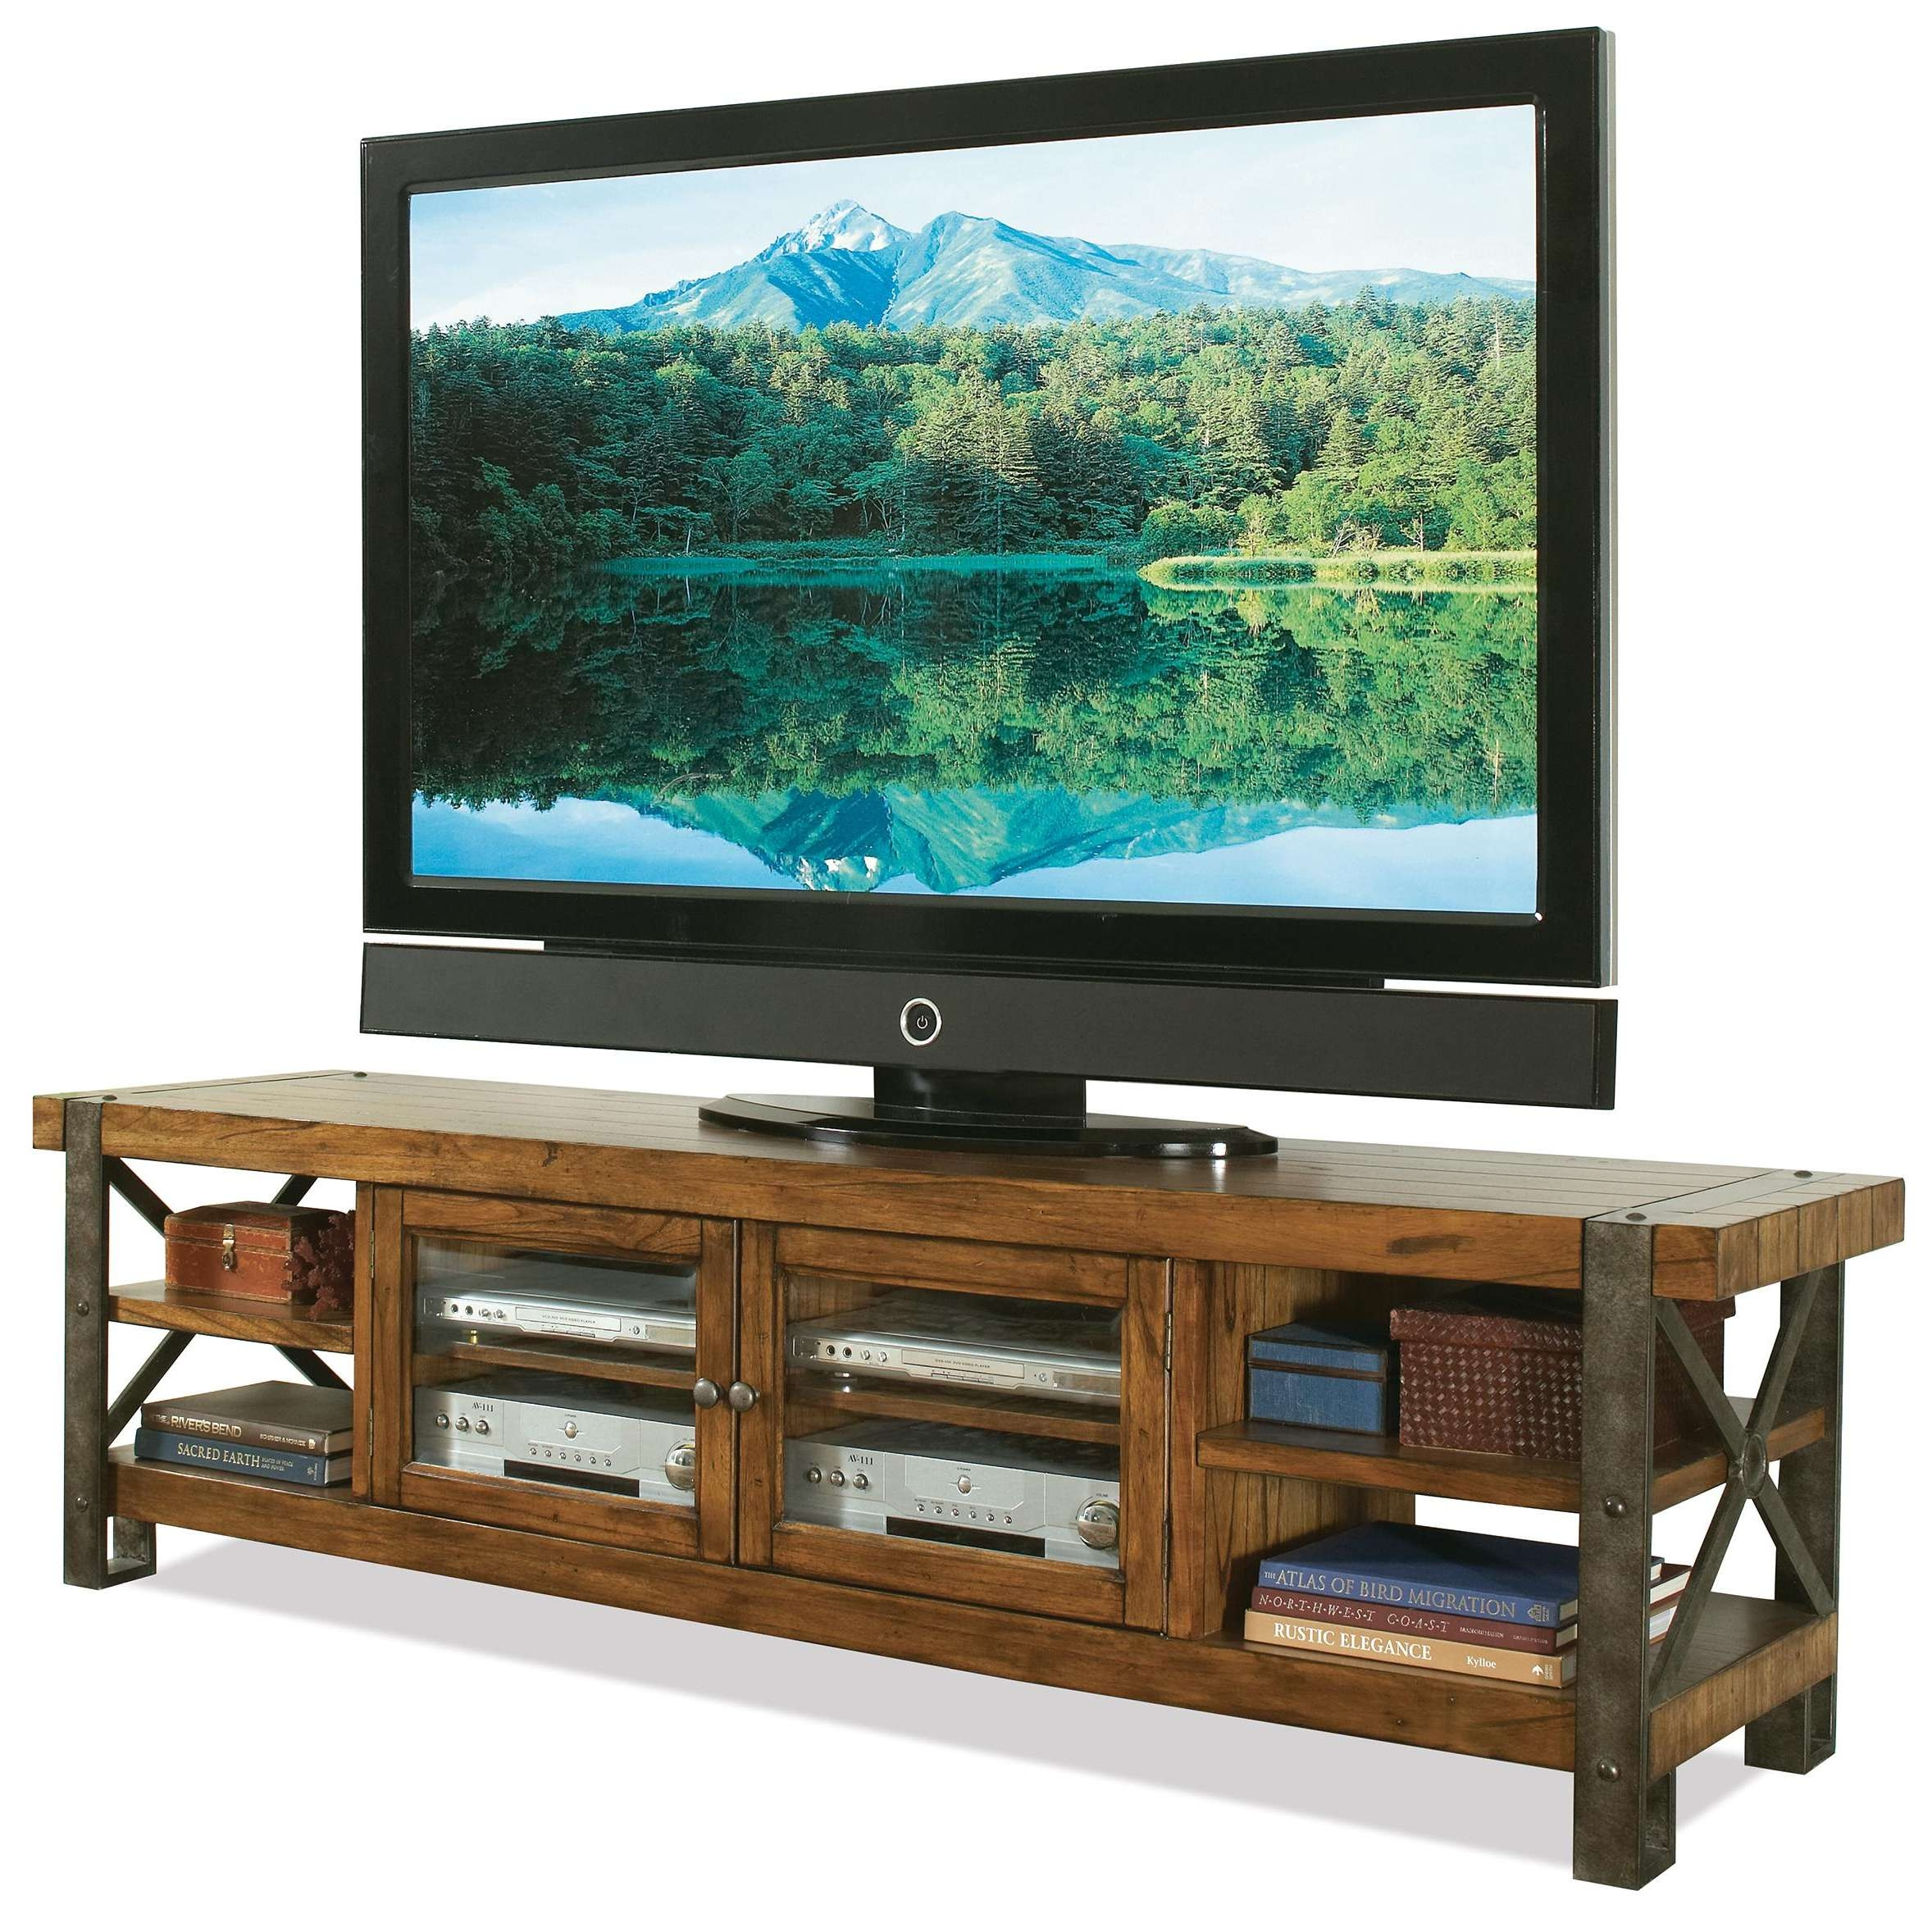 Riverside Furniture Sierra Rustic 80 In Tv Console W/ Glass Doors Within Rustic Wood Tv Cabinets (View 8 of 20)